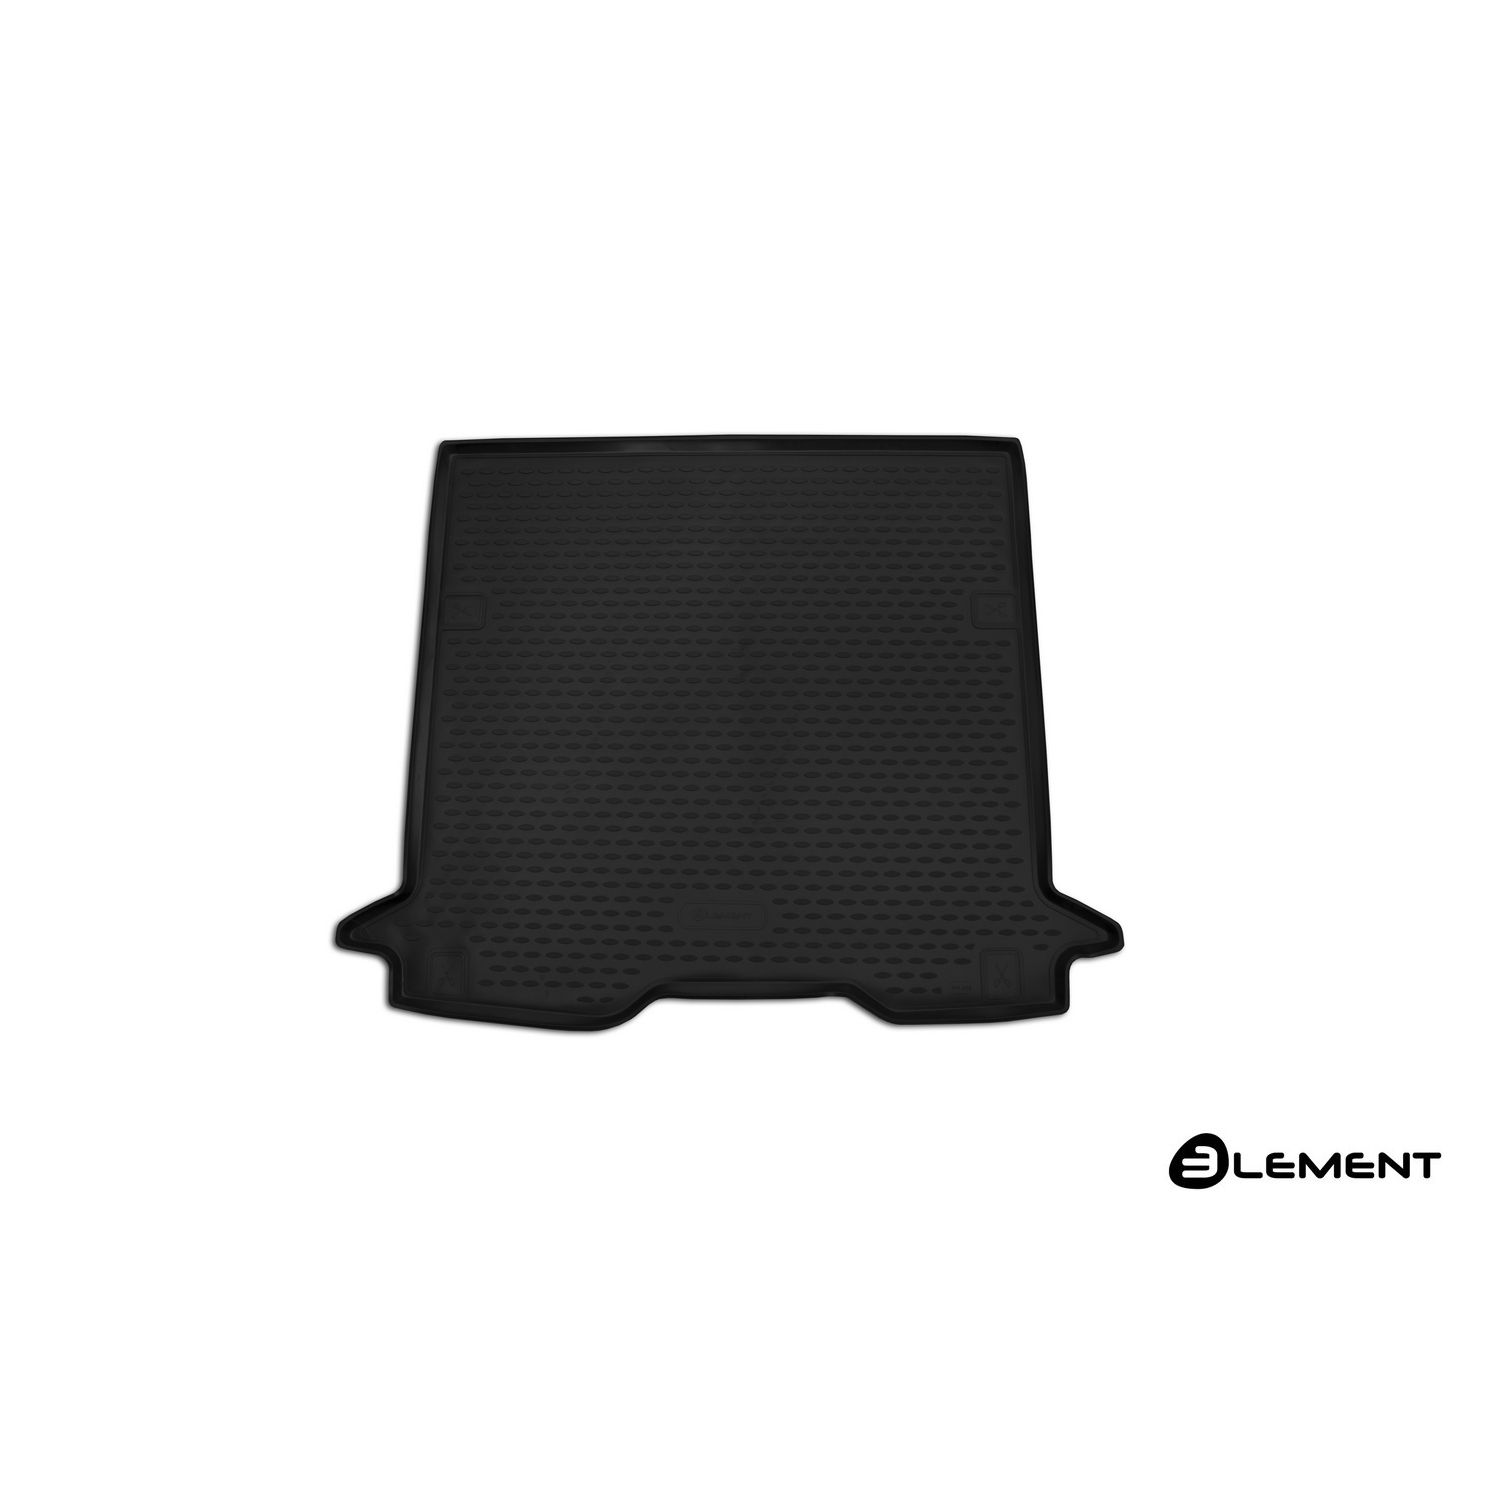 Trunk Mat For RENAULT Dokker, 2018, 1 PCs ELEMENT4153B14